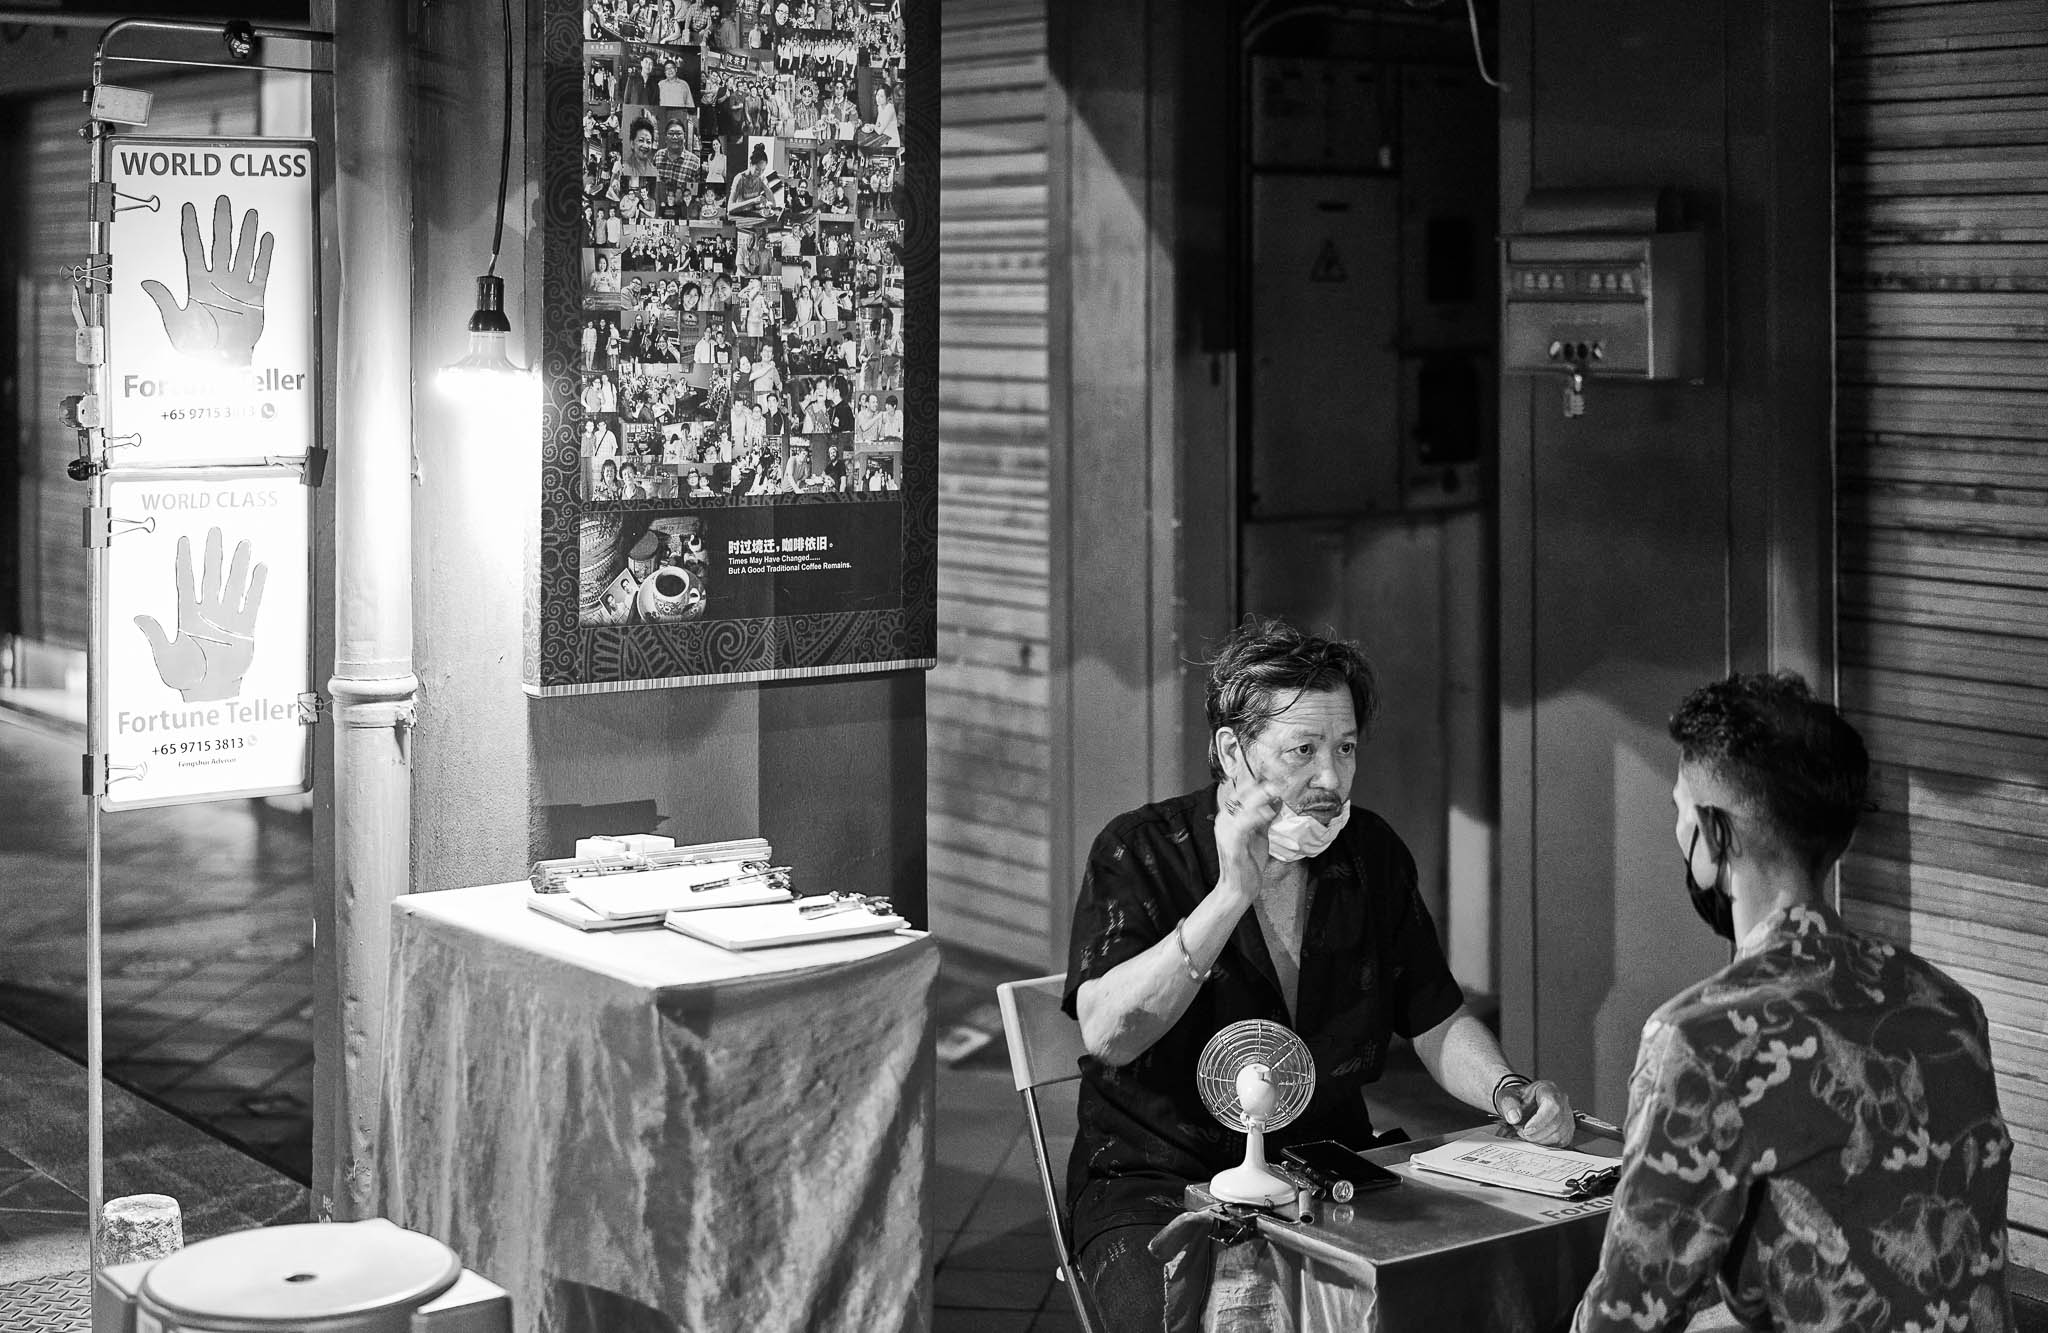 A fortune teller counseling his customer at his roadside stall, Chinatown, Singapore